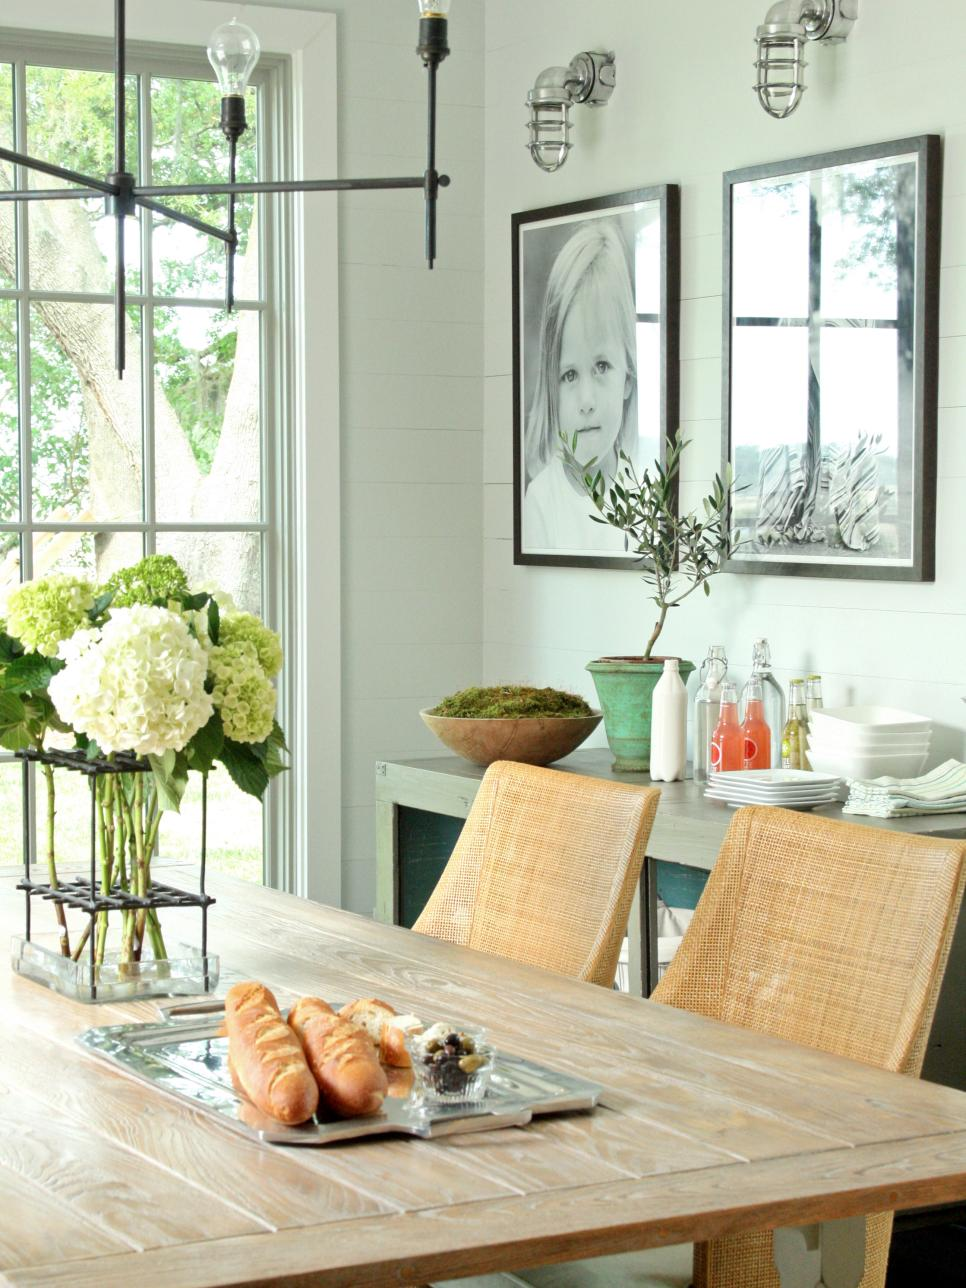 Chic 15 Dining Room Decorating Ideas | HGTV dining room decor